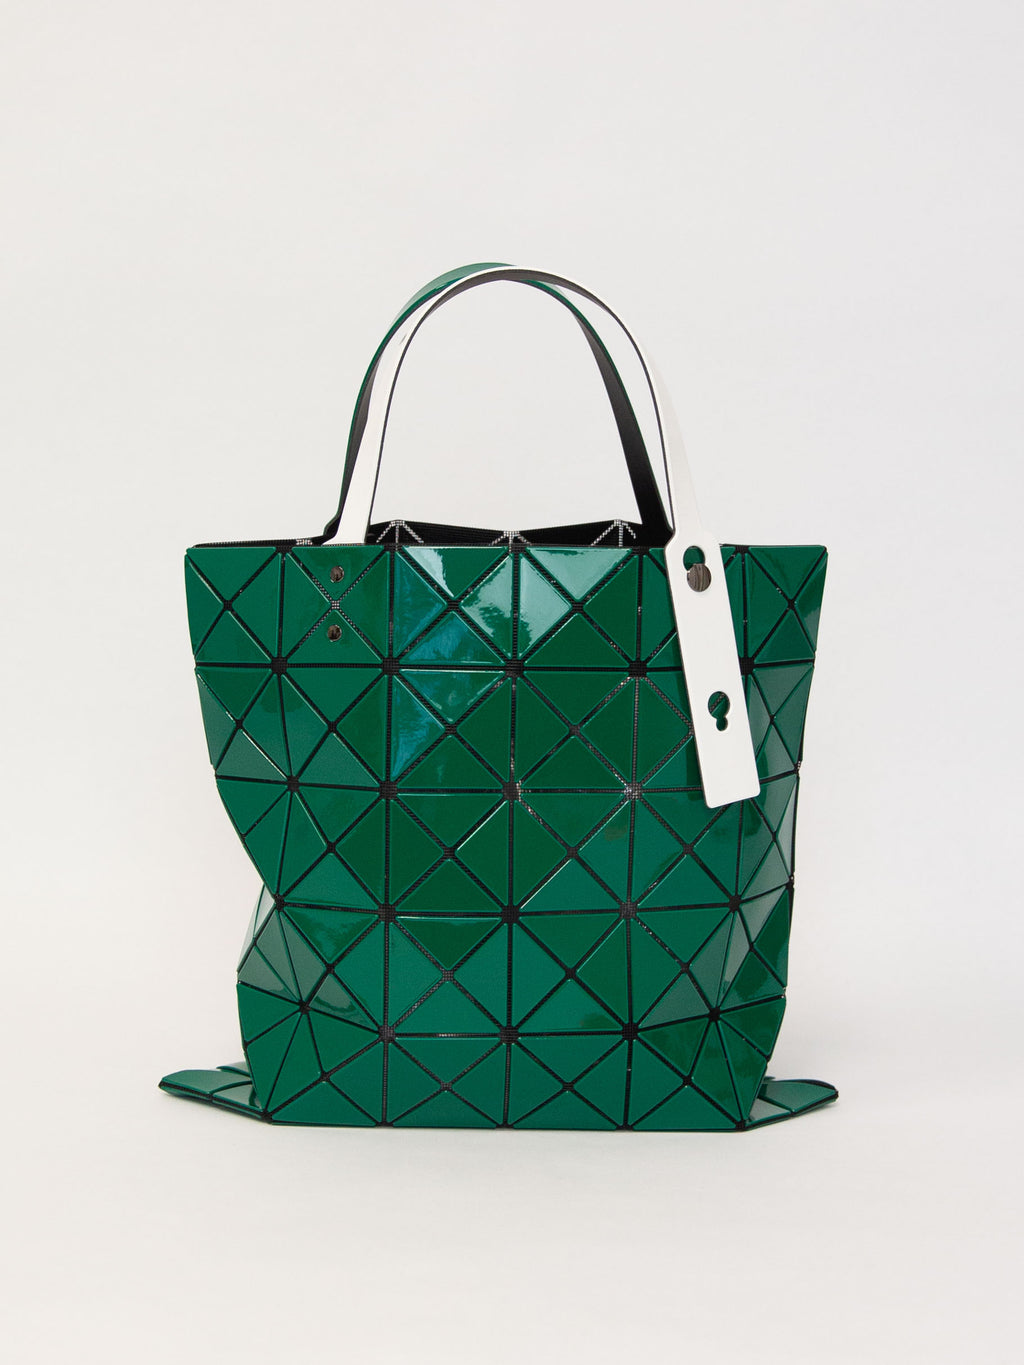 Lucent Gloss Tote With Contrast Strap - Green & White